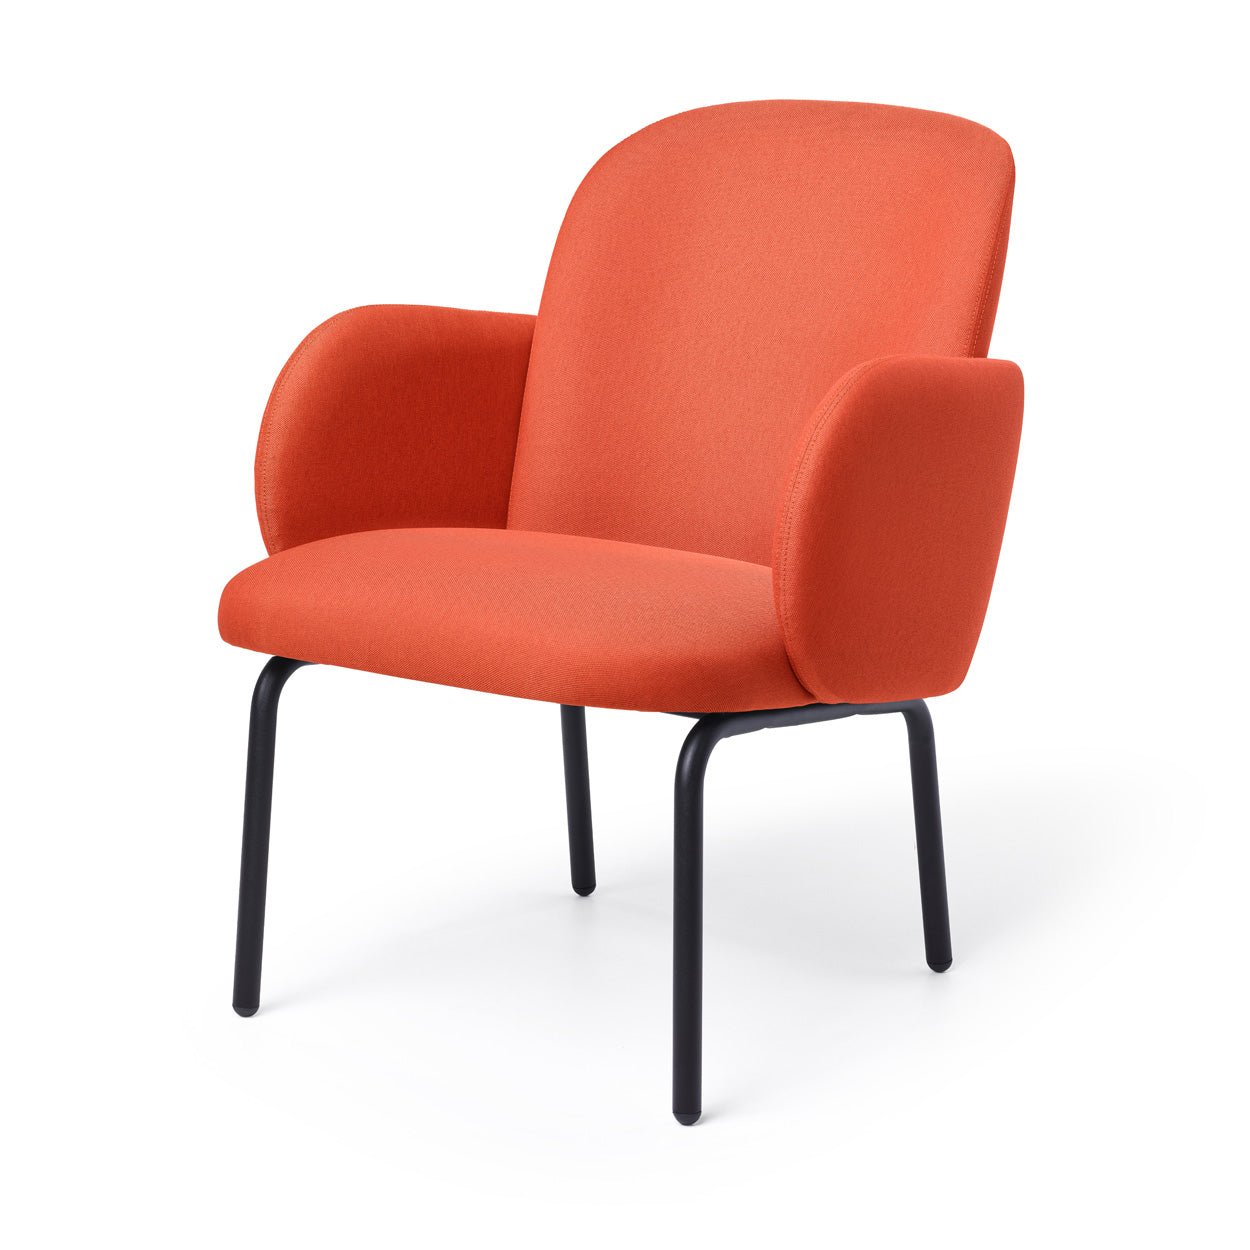 Dost arm chair